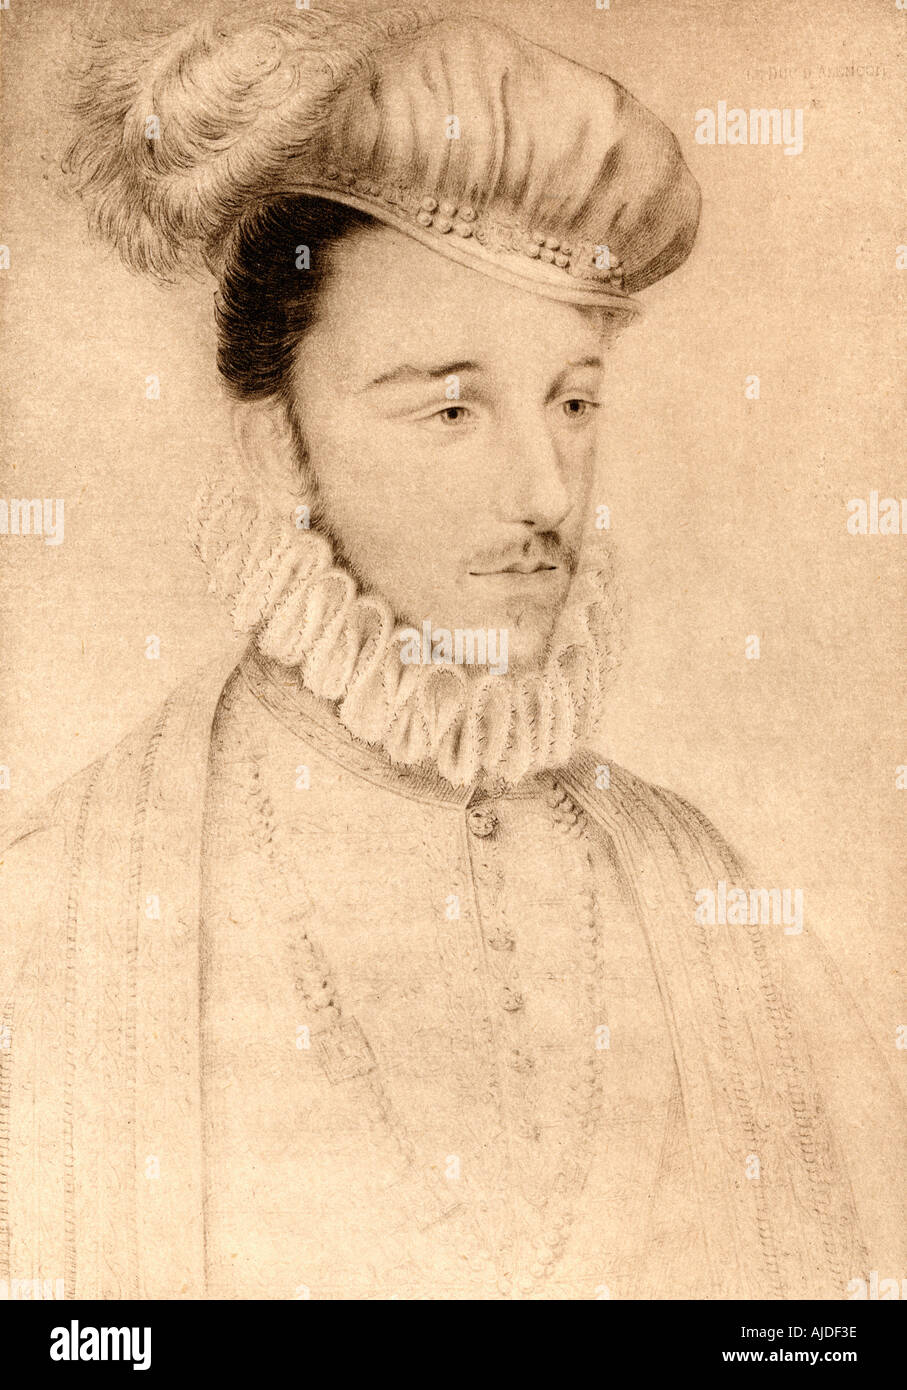 Hercule François de Valois aka Francis, Duke of Anjou and Alençon, 1554 - 1584. Youngest son of Henry II of France and Catherine de' Medici. - Stock Image